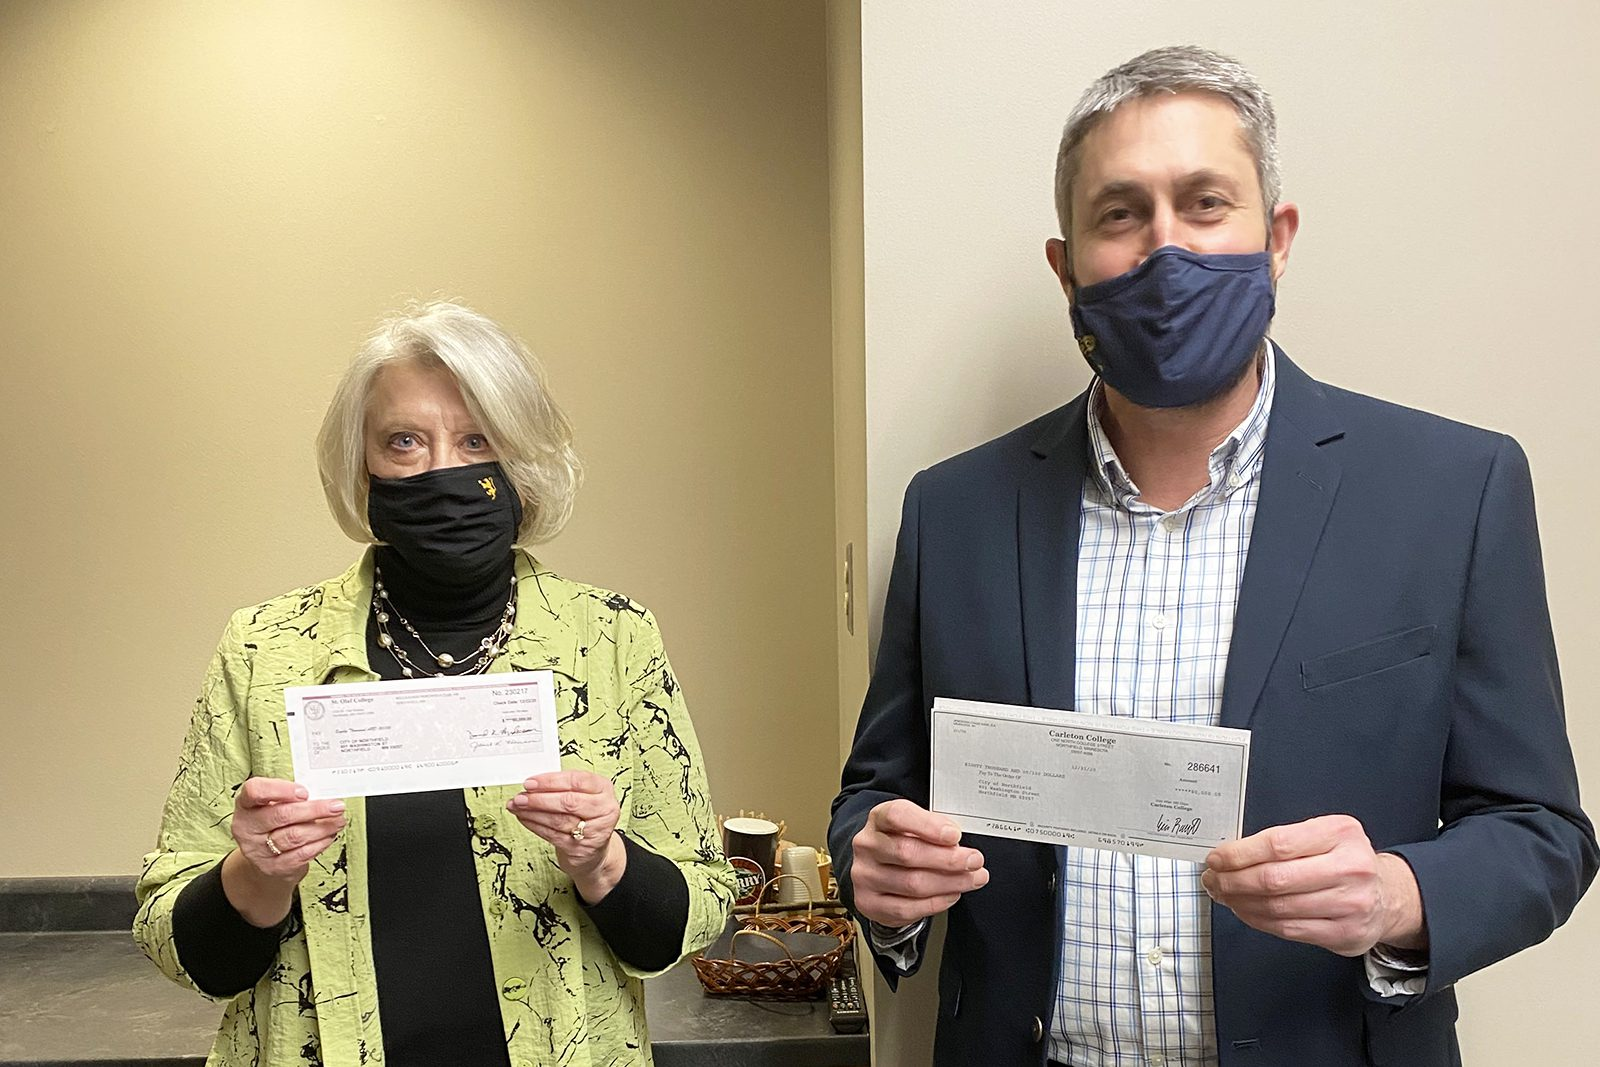 St. Olaf Vice President and Chief Financial Officer Janet Hanson and Carleton Vice President and Treasurer Eric Runestad pose for a photo with the checks they gave to the City of Northfield.